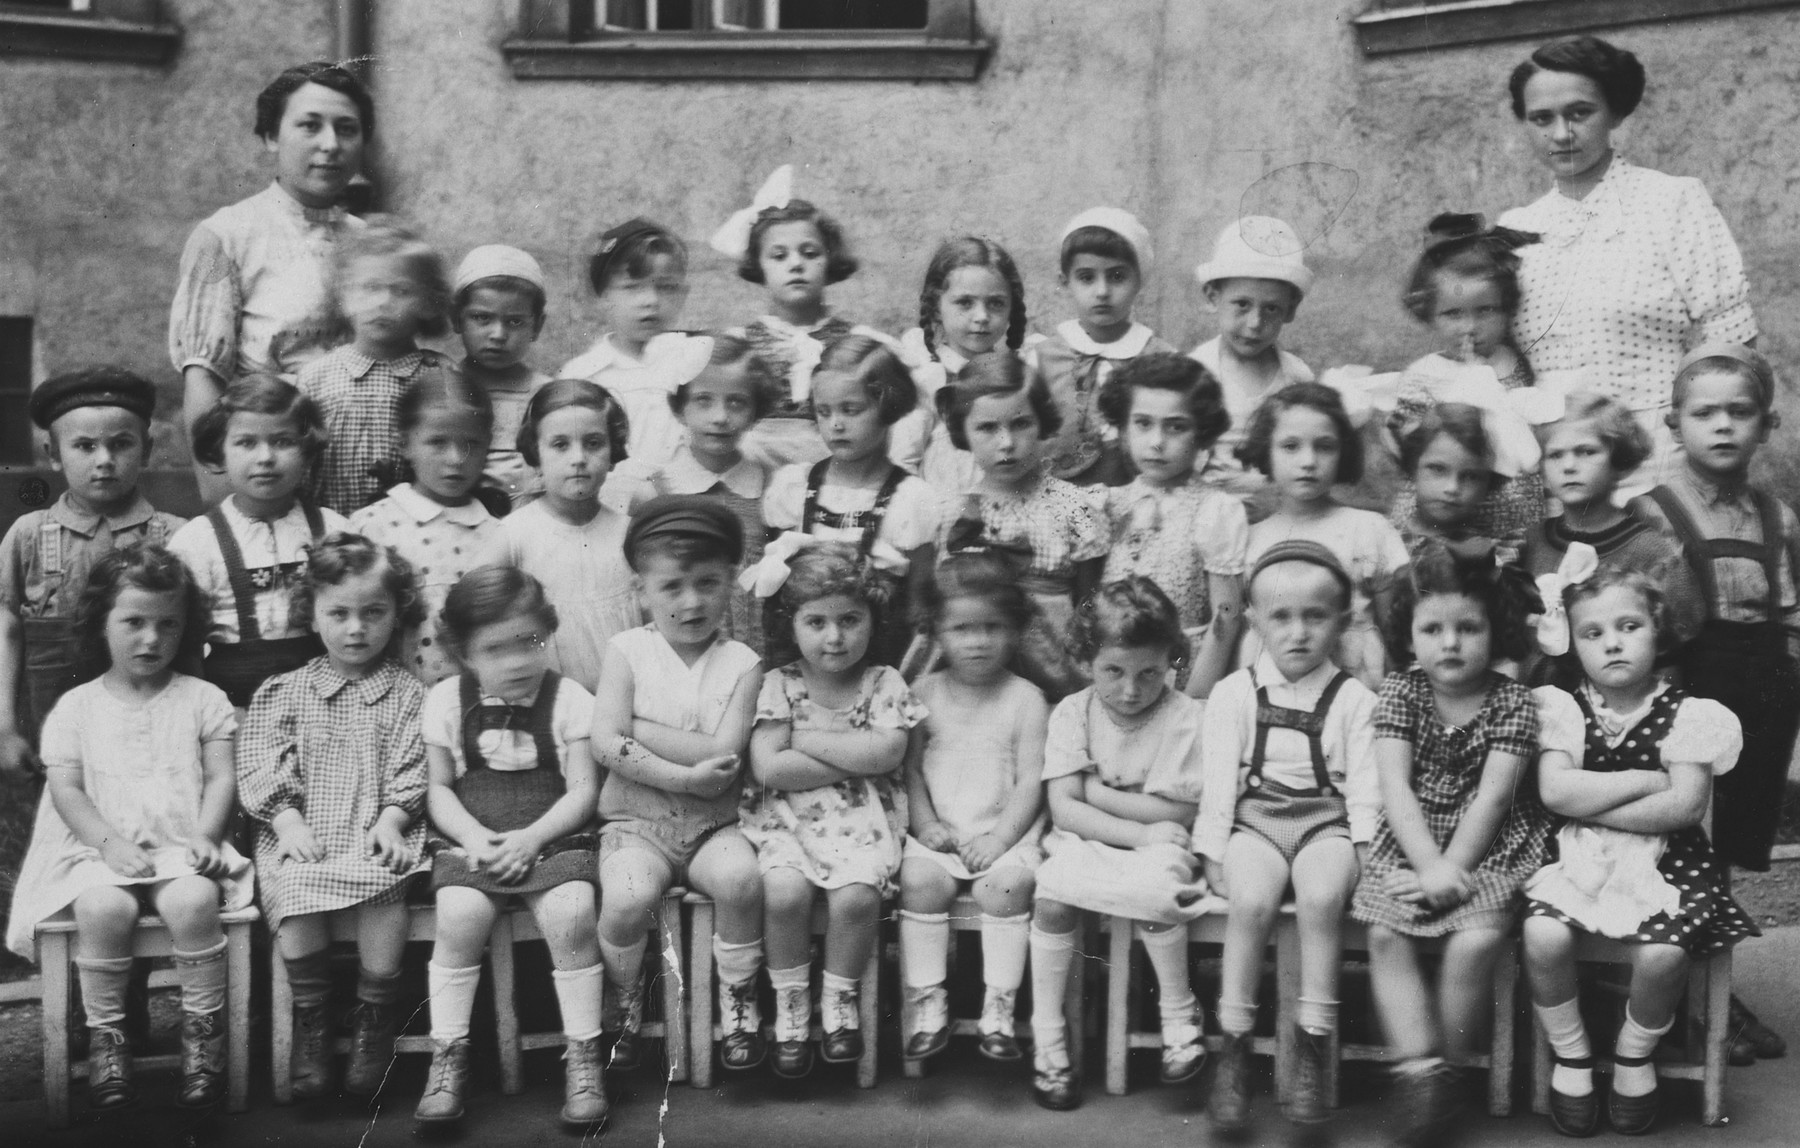 Class photograph of the Jewish kindergarten in Bratislava.  Among those pictured is Hetty Fisch, second row, fourth from the left.